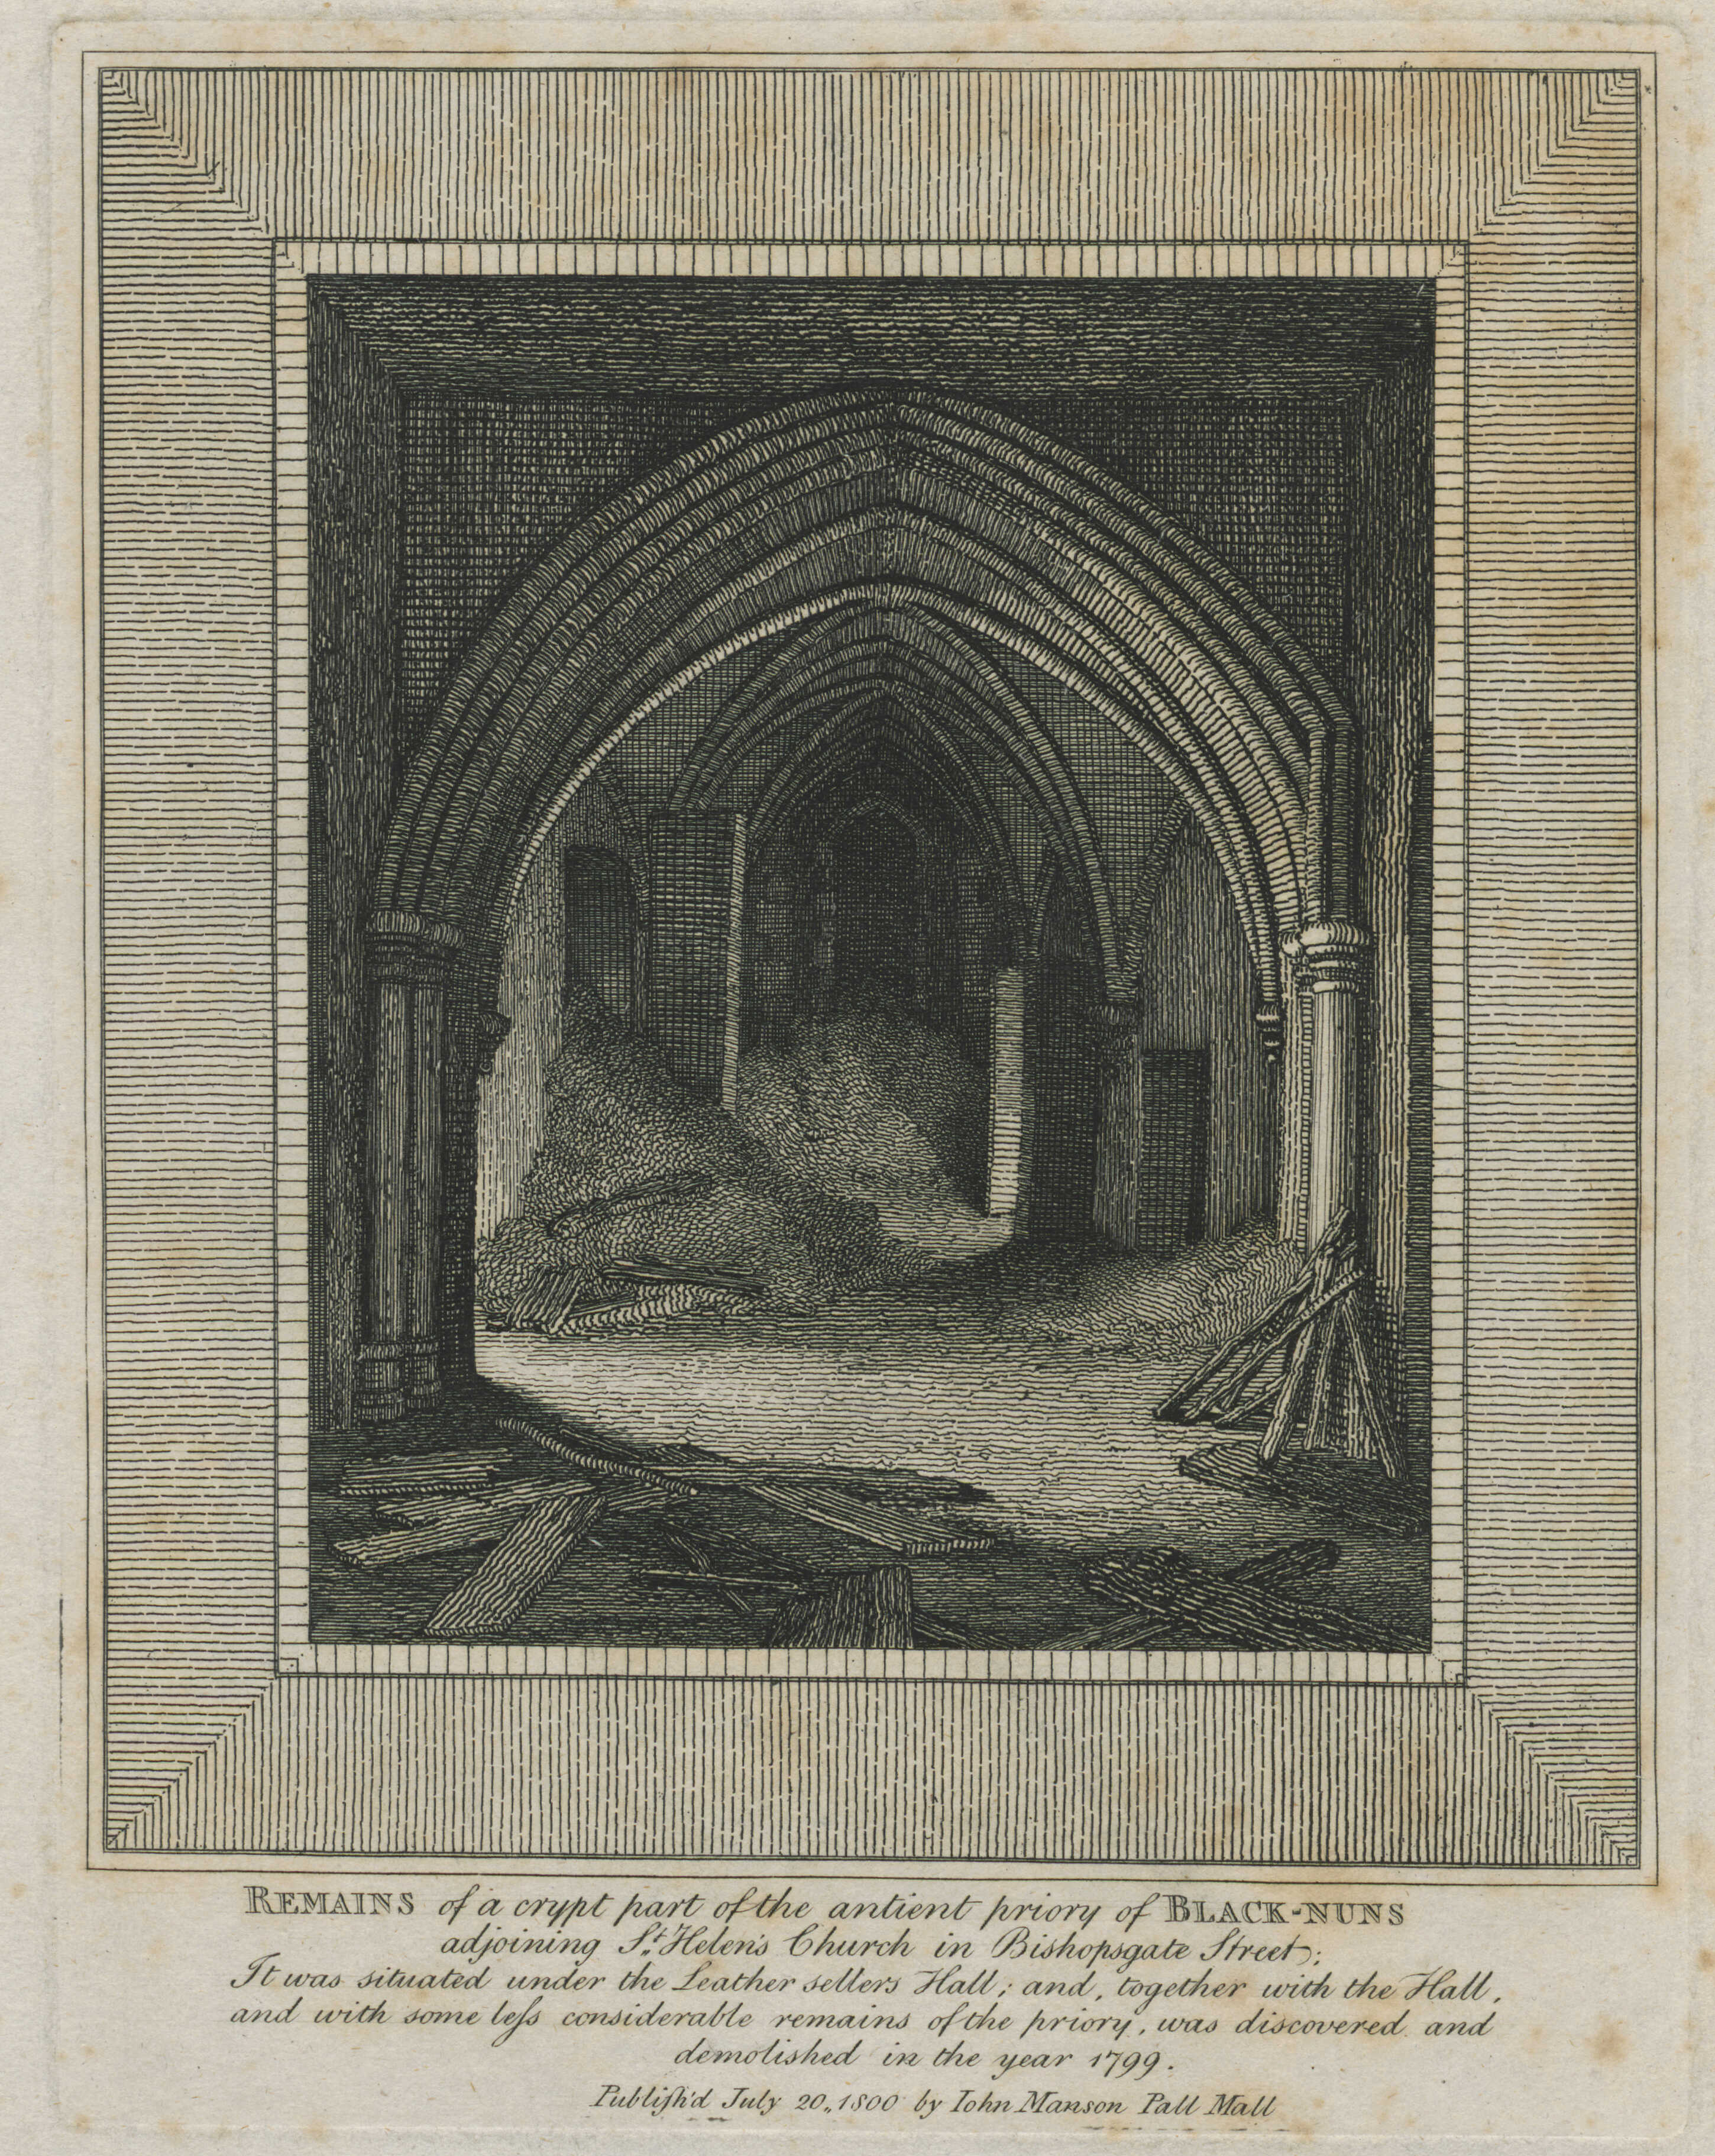 81-remains-of-a-crypt-part-of-the-antient-priory-of-black-nuns-adjoining-st-helens-church-in-bishopsgate-street